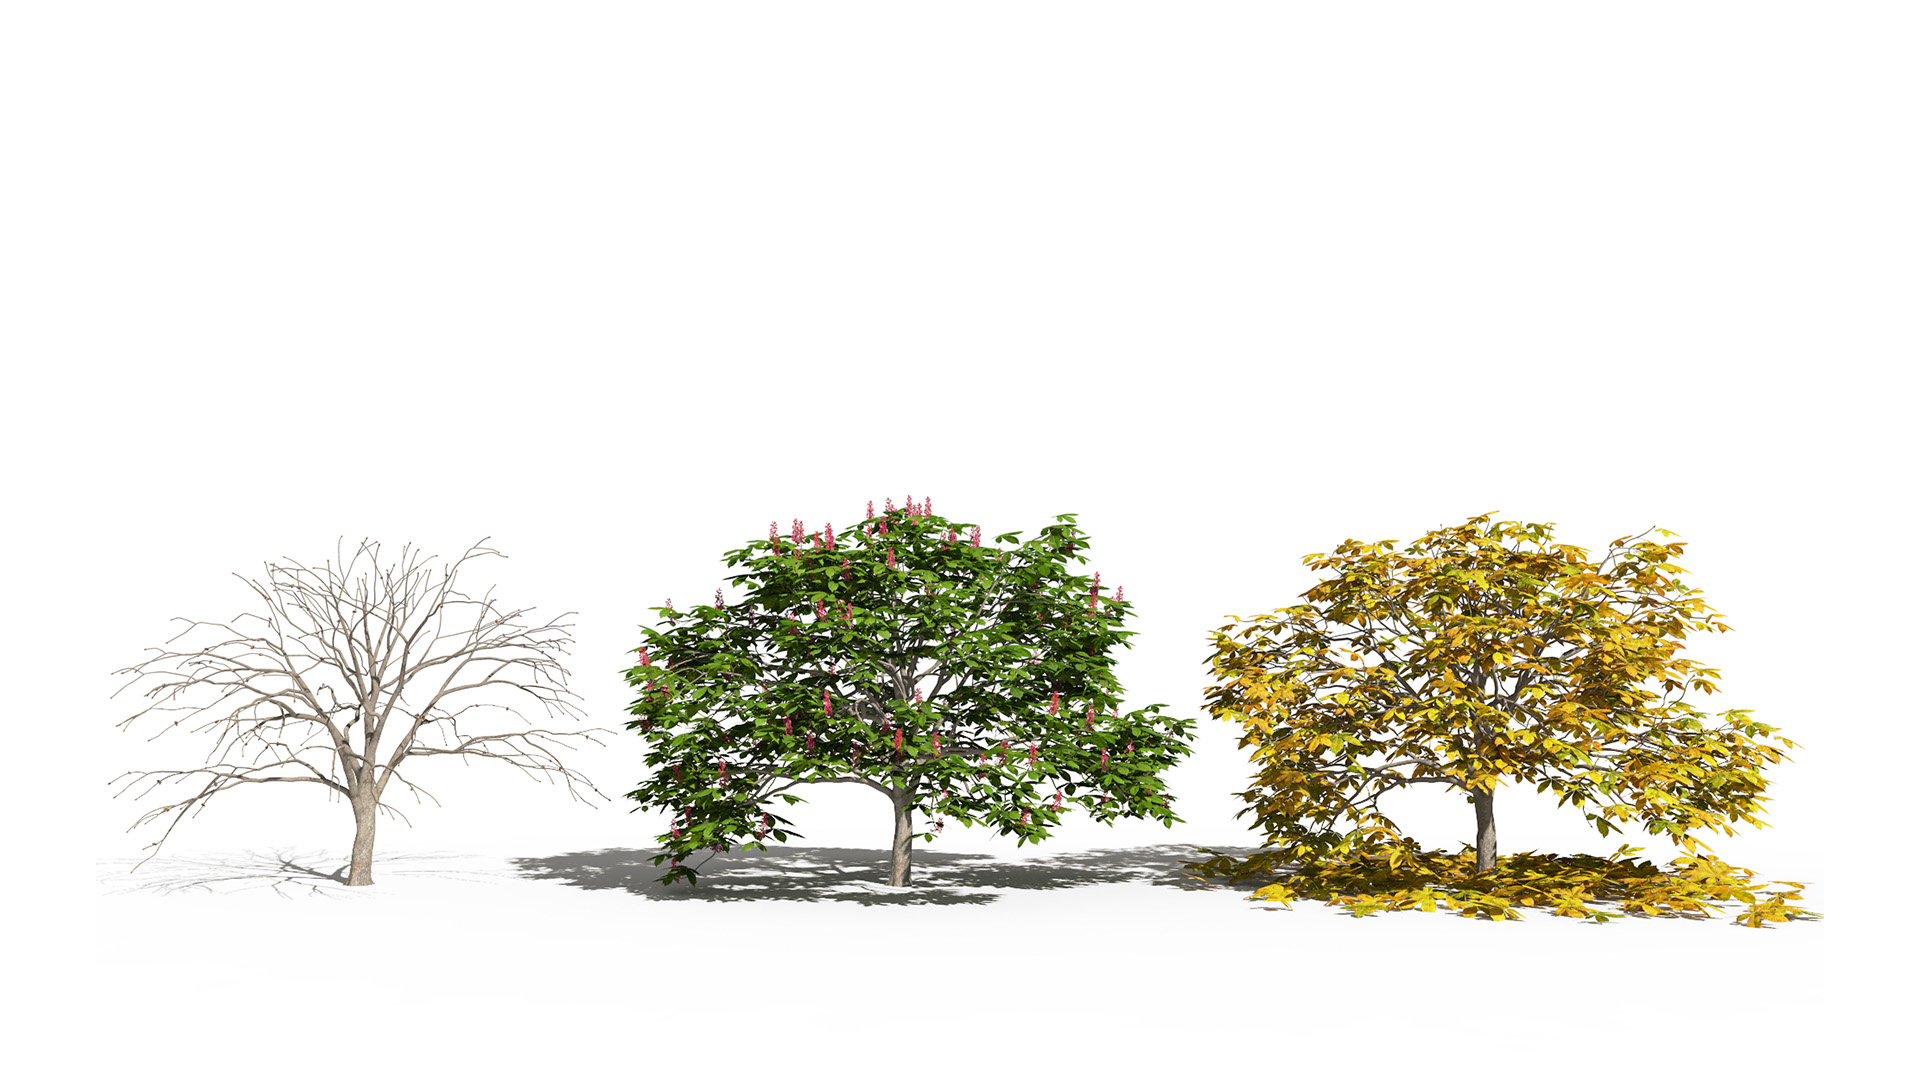 3D model of the Dwarf red horse chestnut Aesculus pavia season variations